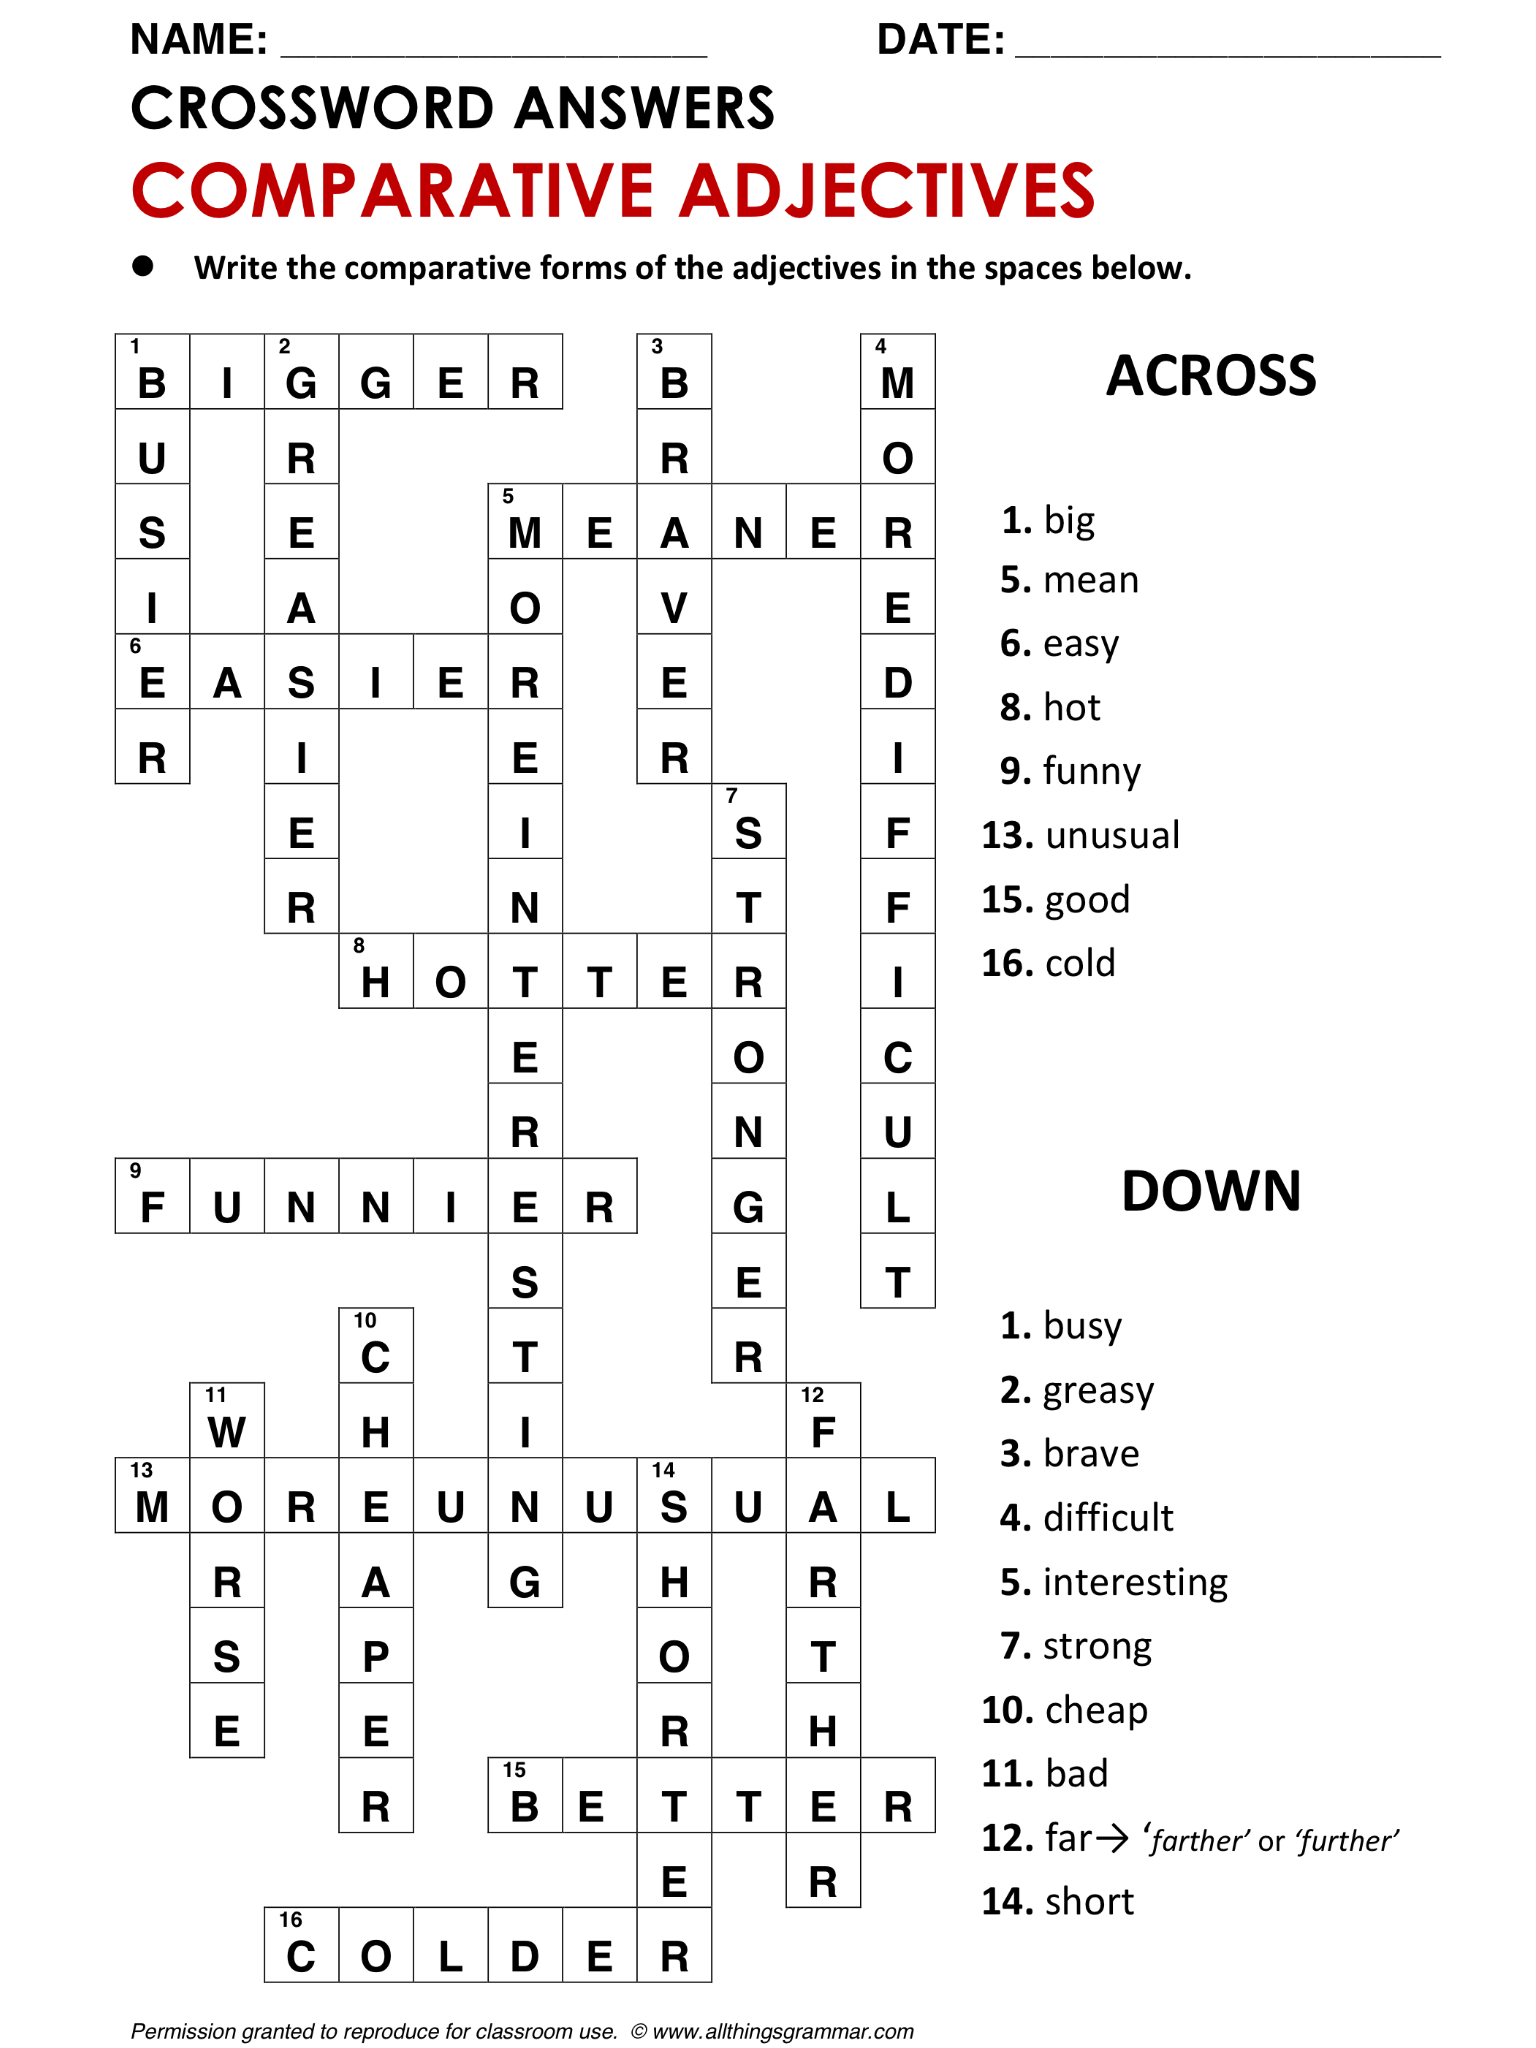 worksheet Worksheets On Comparative Adjectives english grammar crossword comparative adjectives httpwww allthingsgrammar com